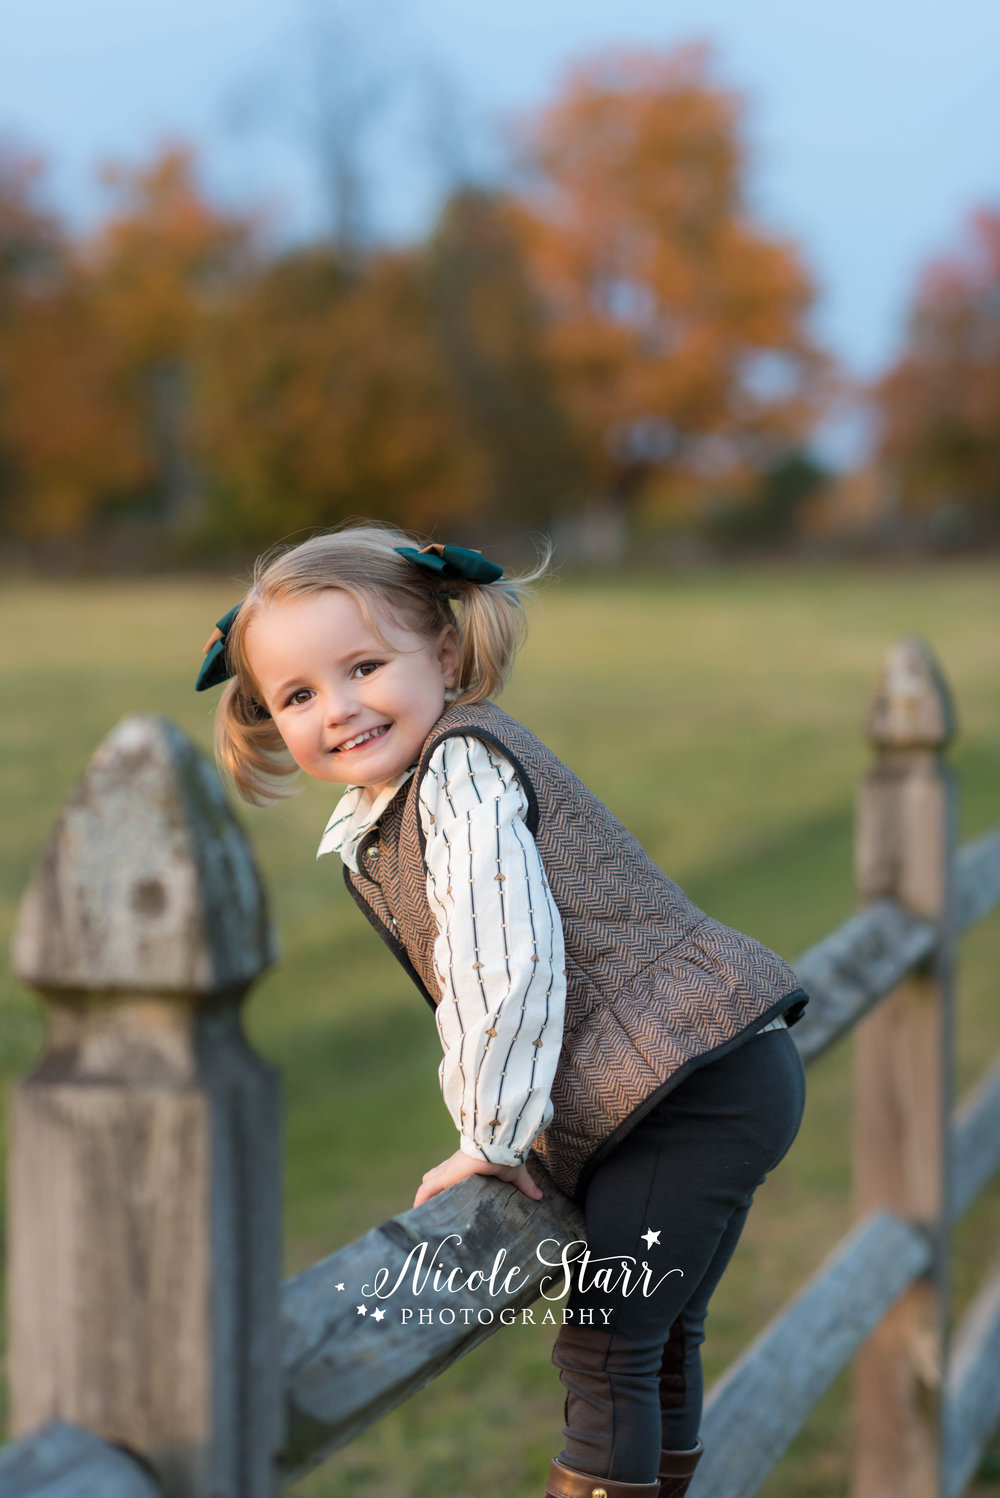 rustic family photo session at pitney meadows community farm in saratoga springs ny